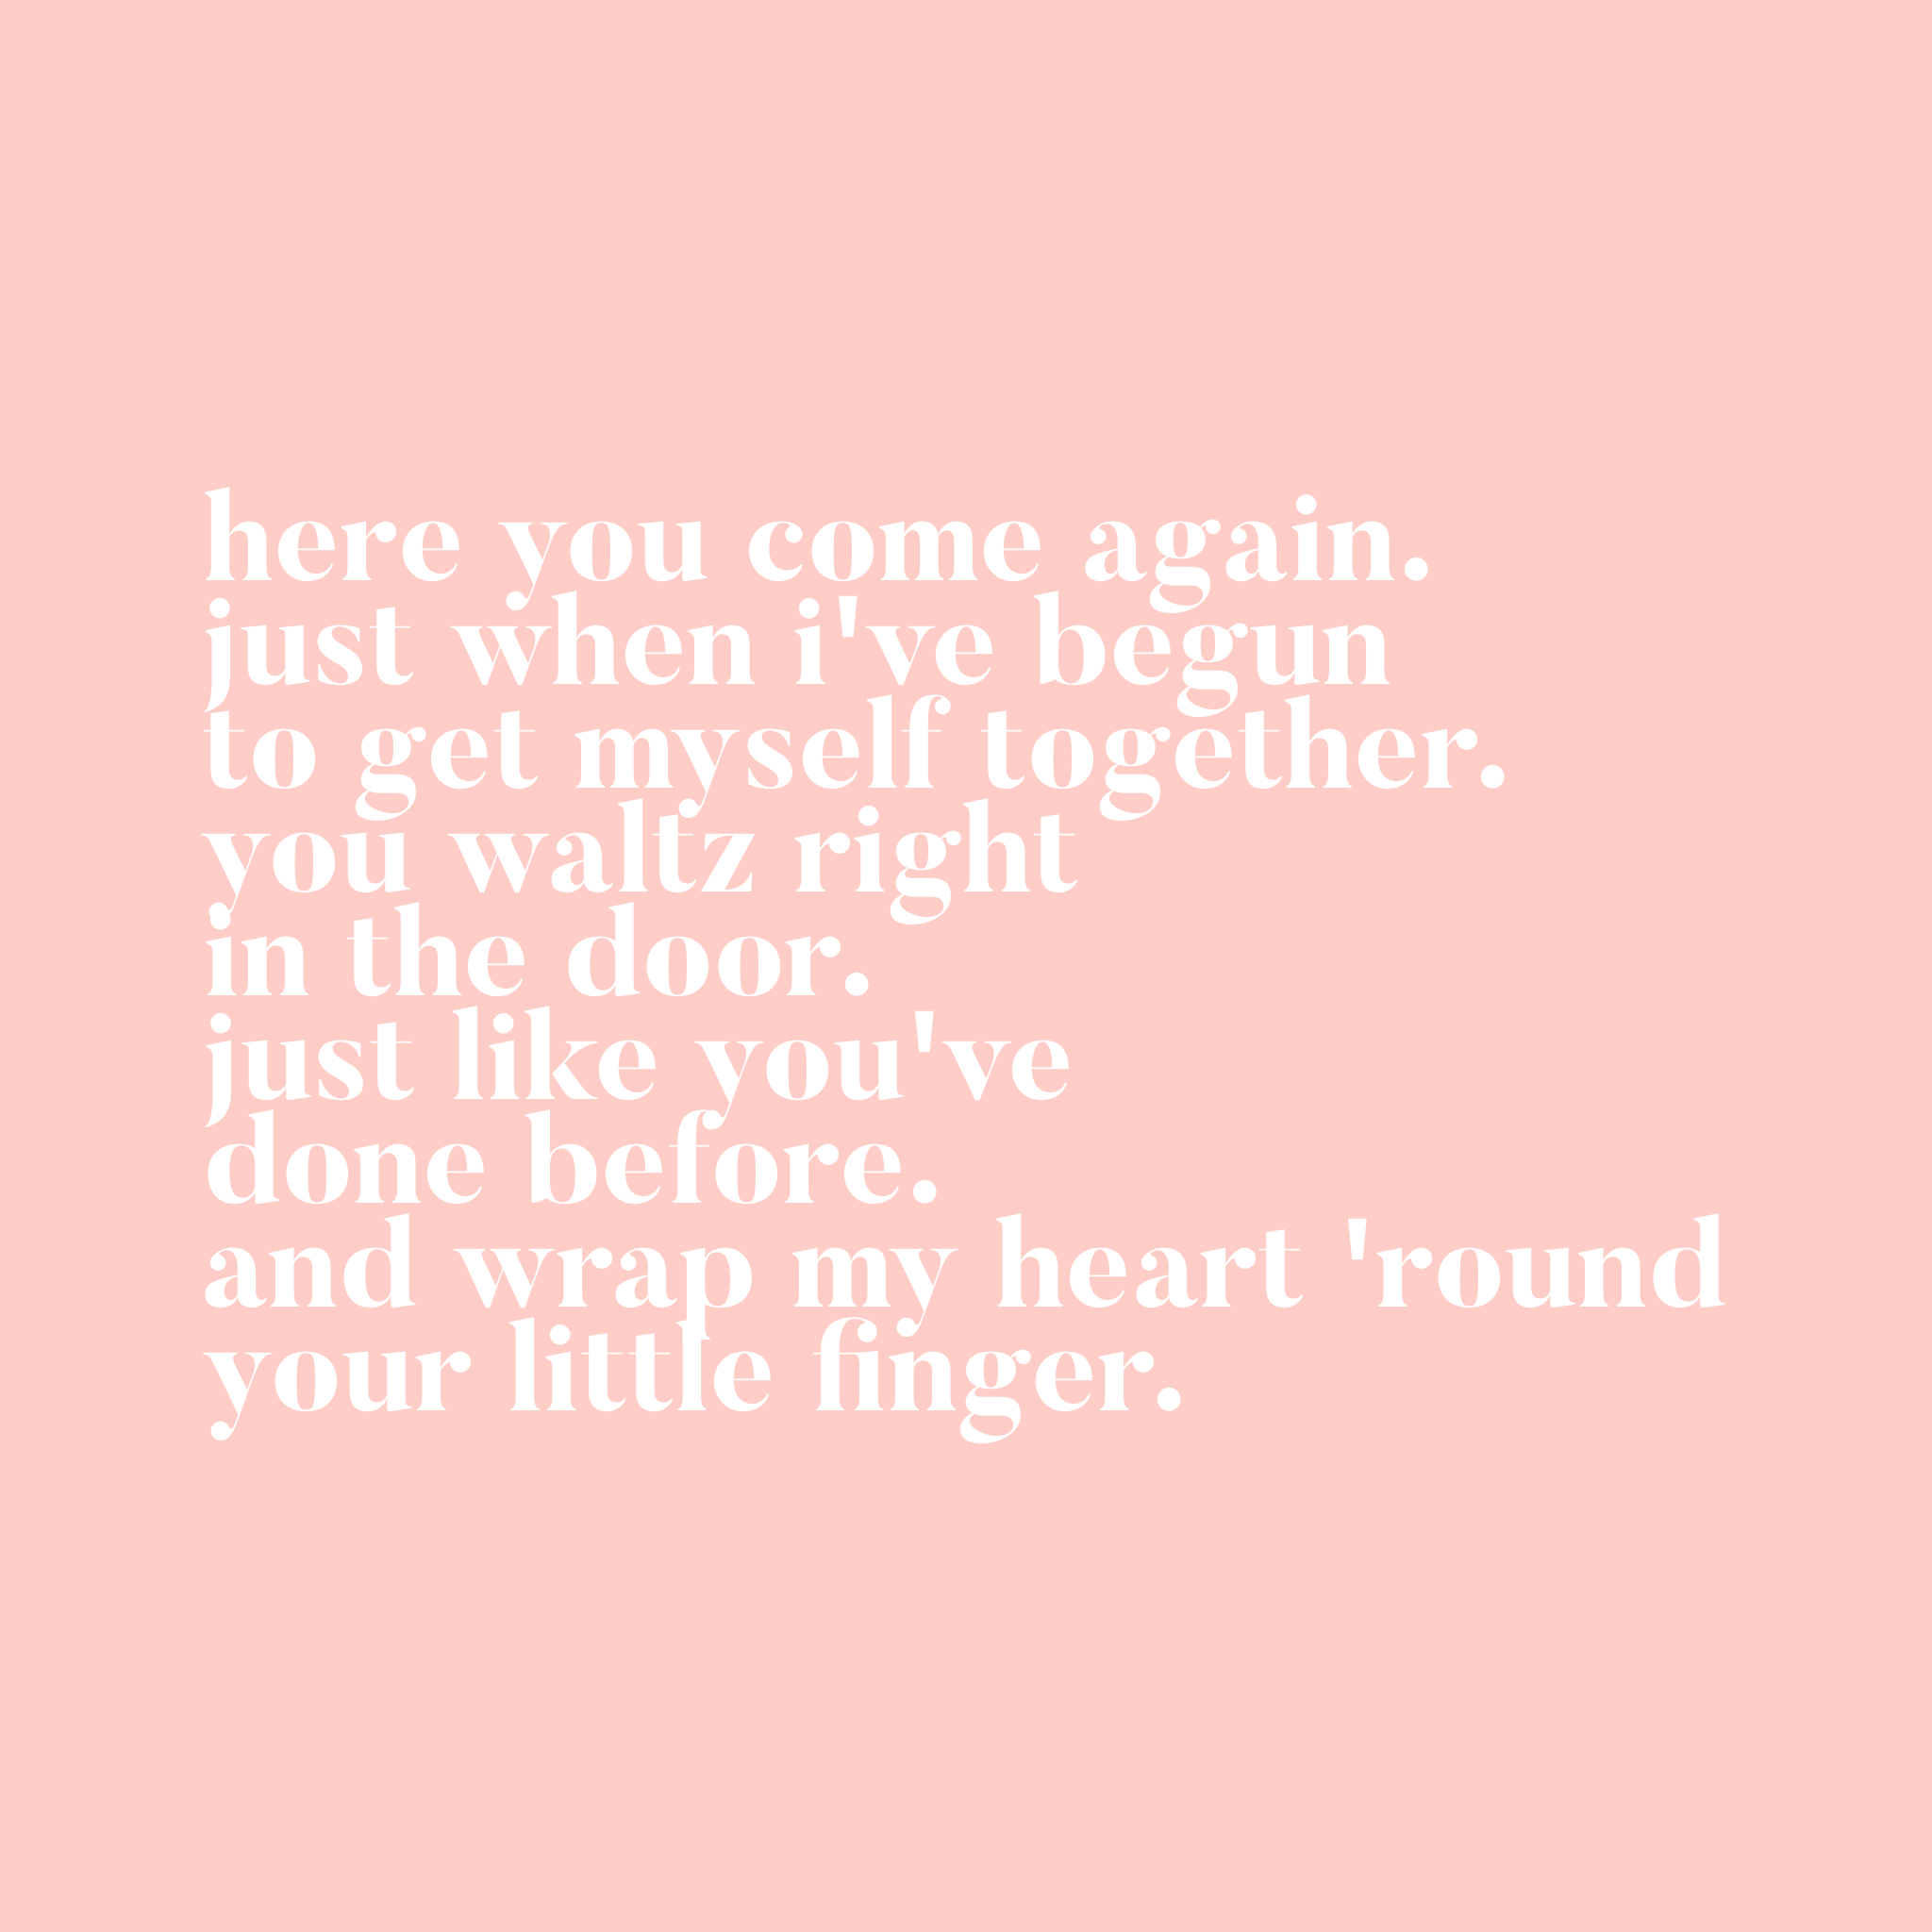 Wrap My Heart Round Your Finger Dolly Parton Here You Come Again Background Wallpaper Quotes Dolly Parton Quotes Dolly Parton Lyrics Dolly Parton Songs